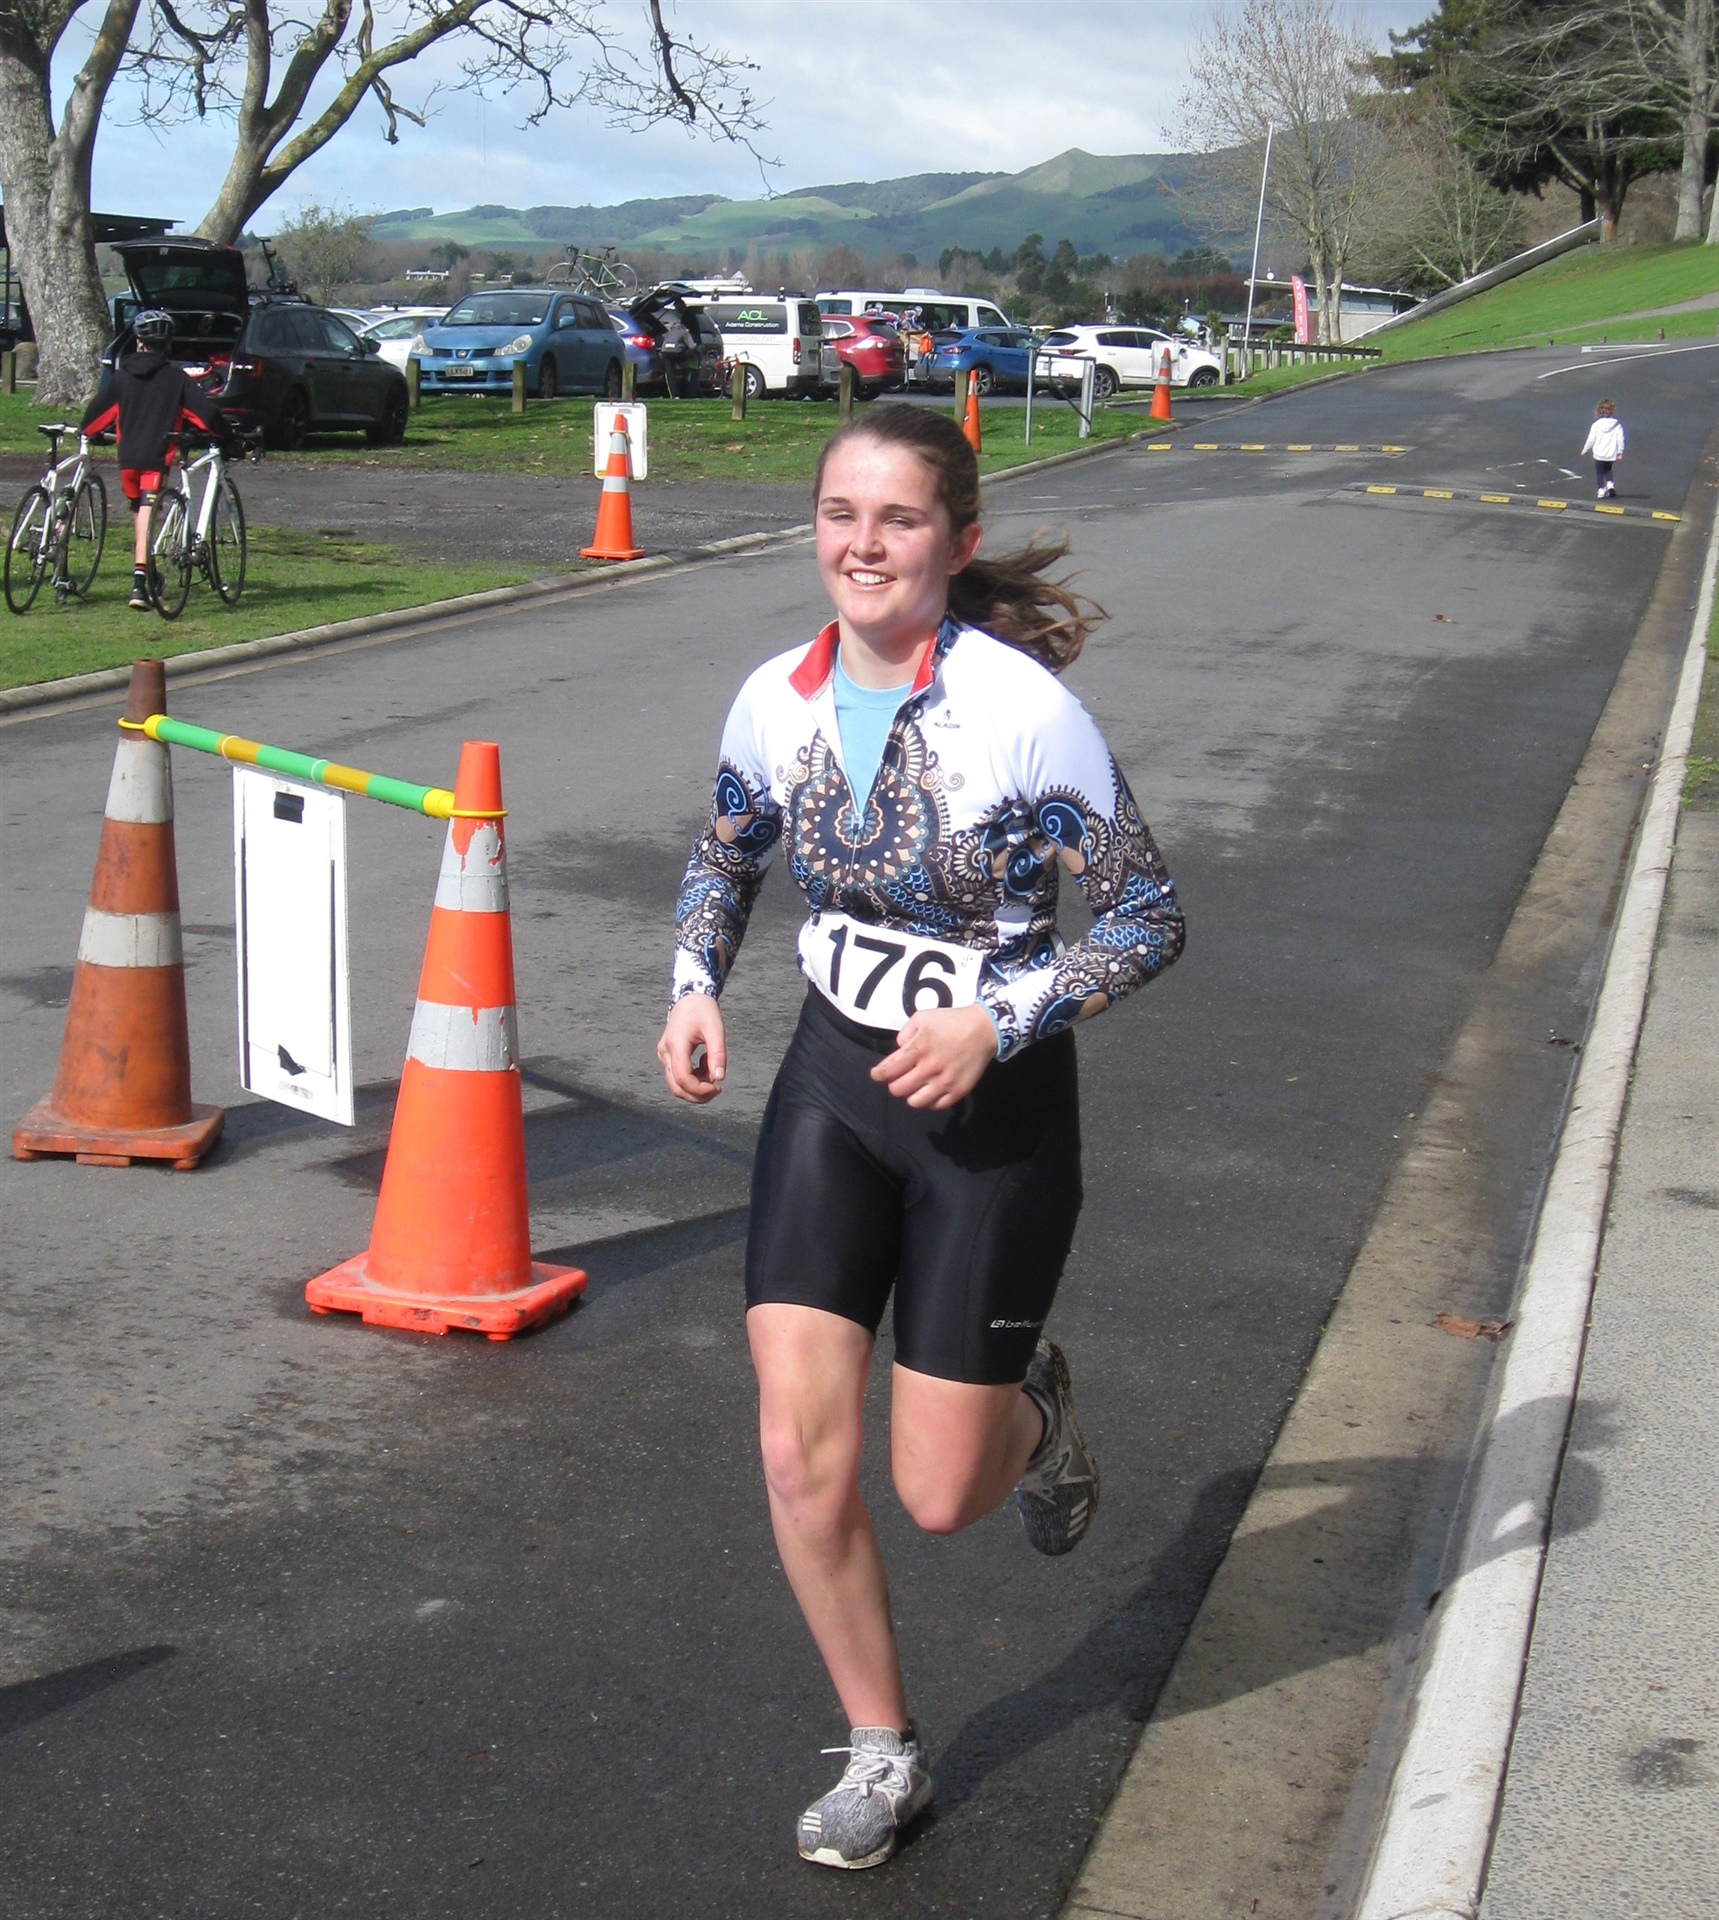 Feet and wheels hit the road for Waikato duathlon champs